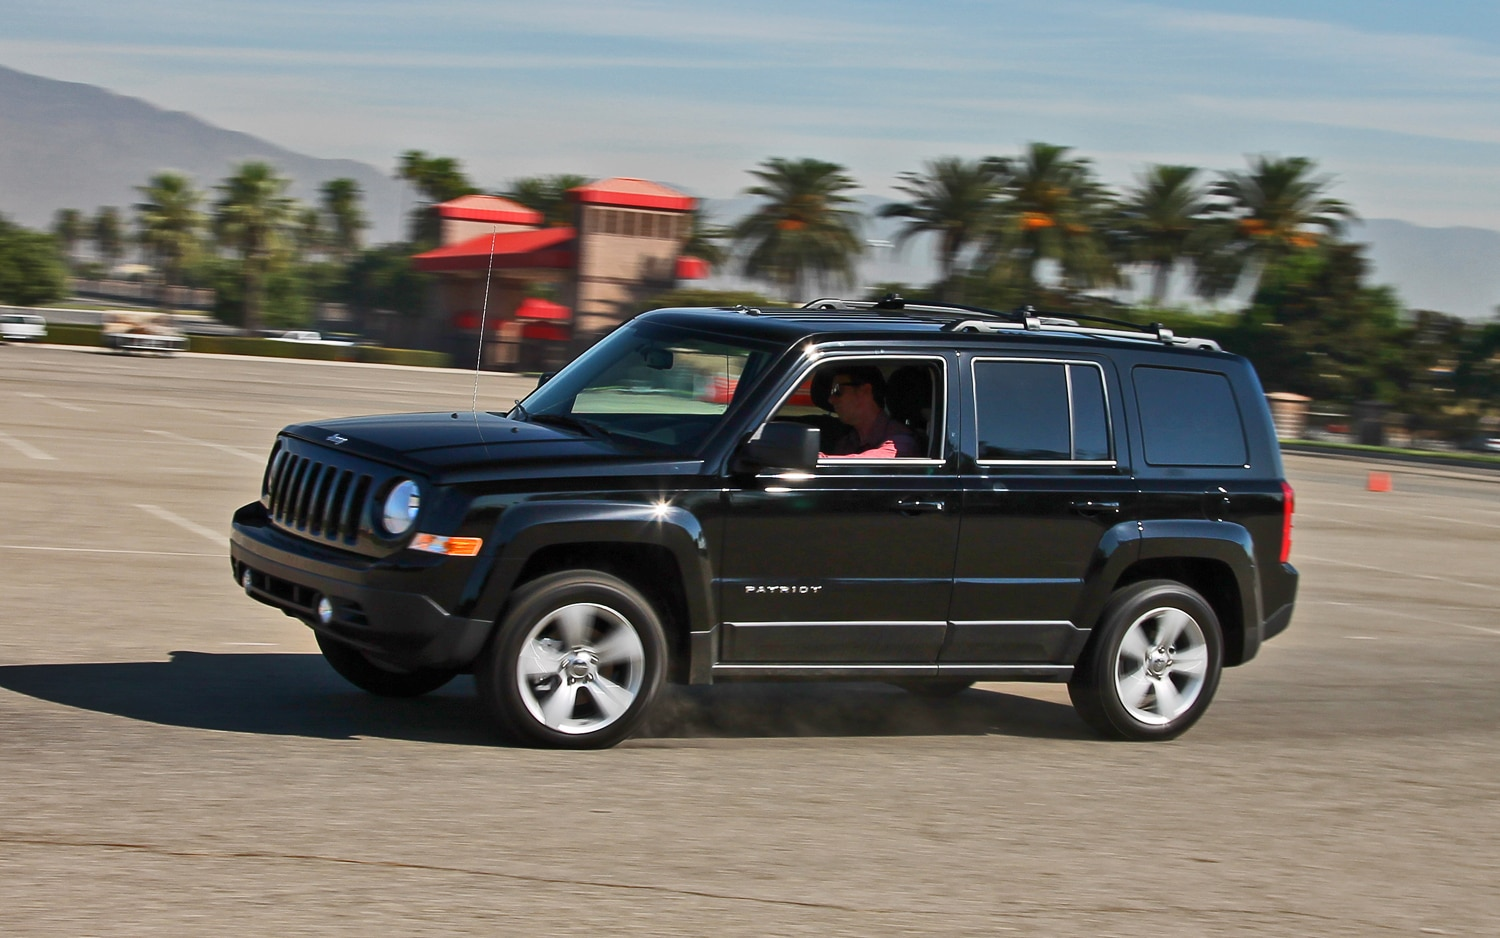 2013 Jeep Patriot Latitude 4X4 Front View In Motion 02